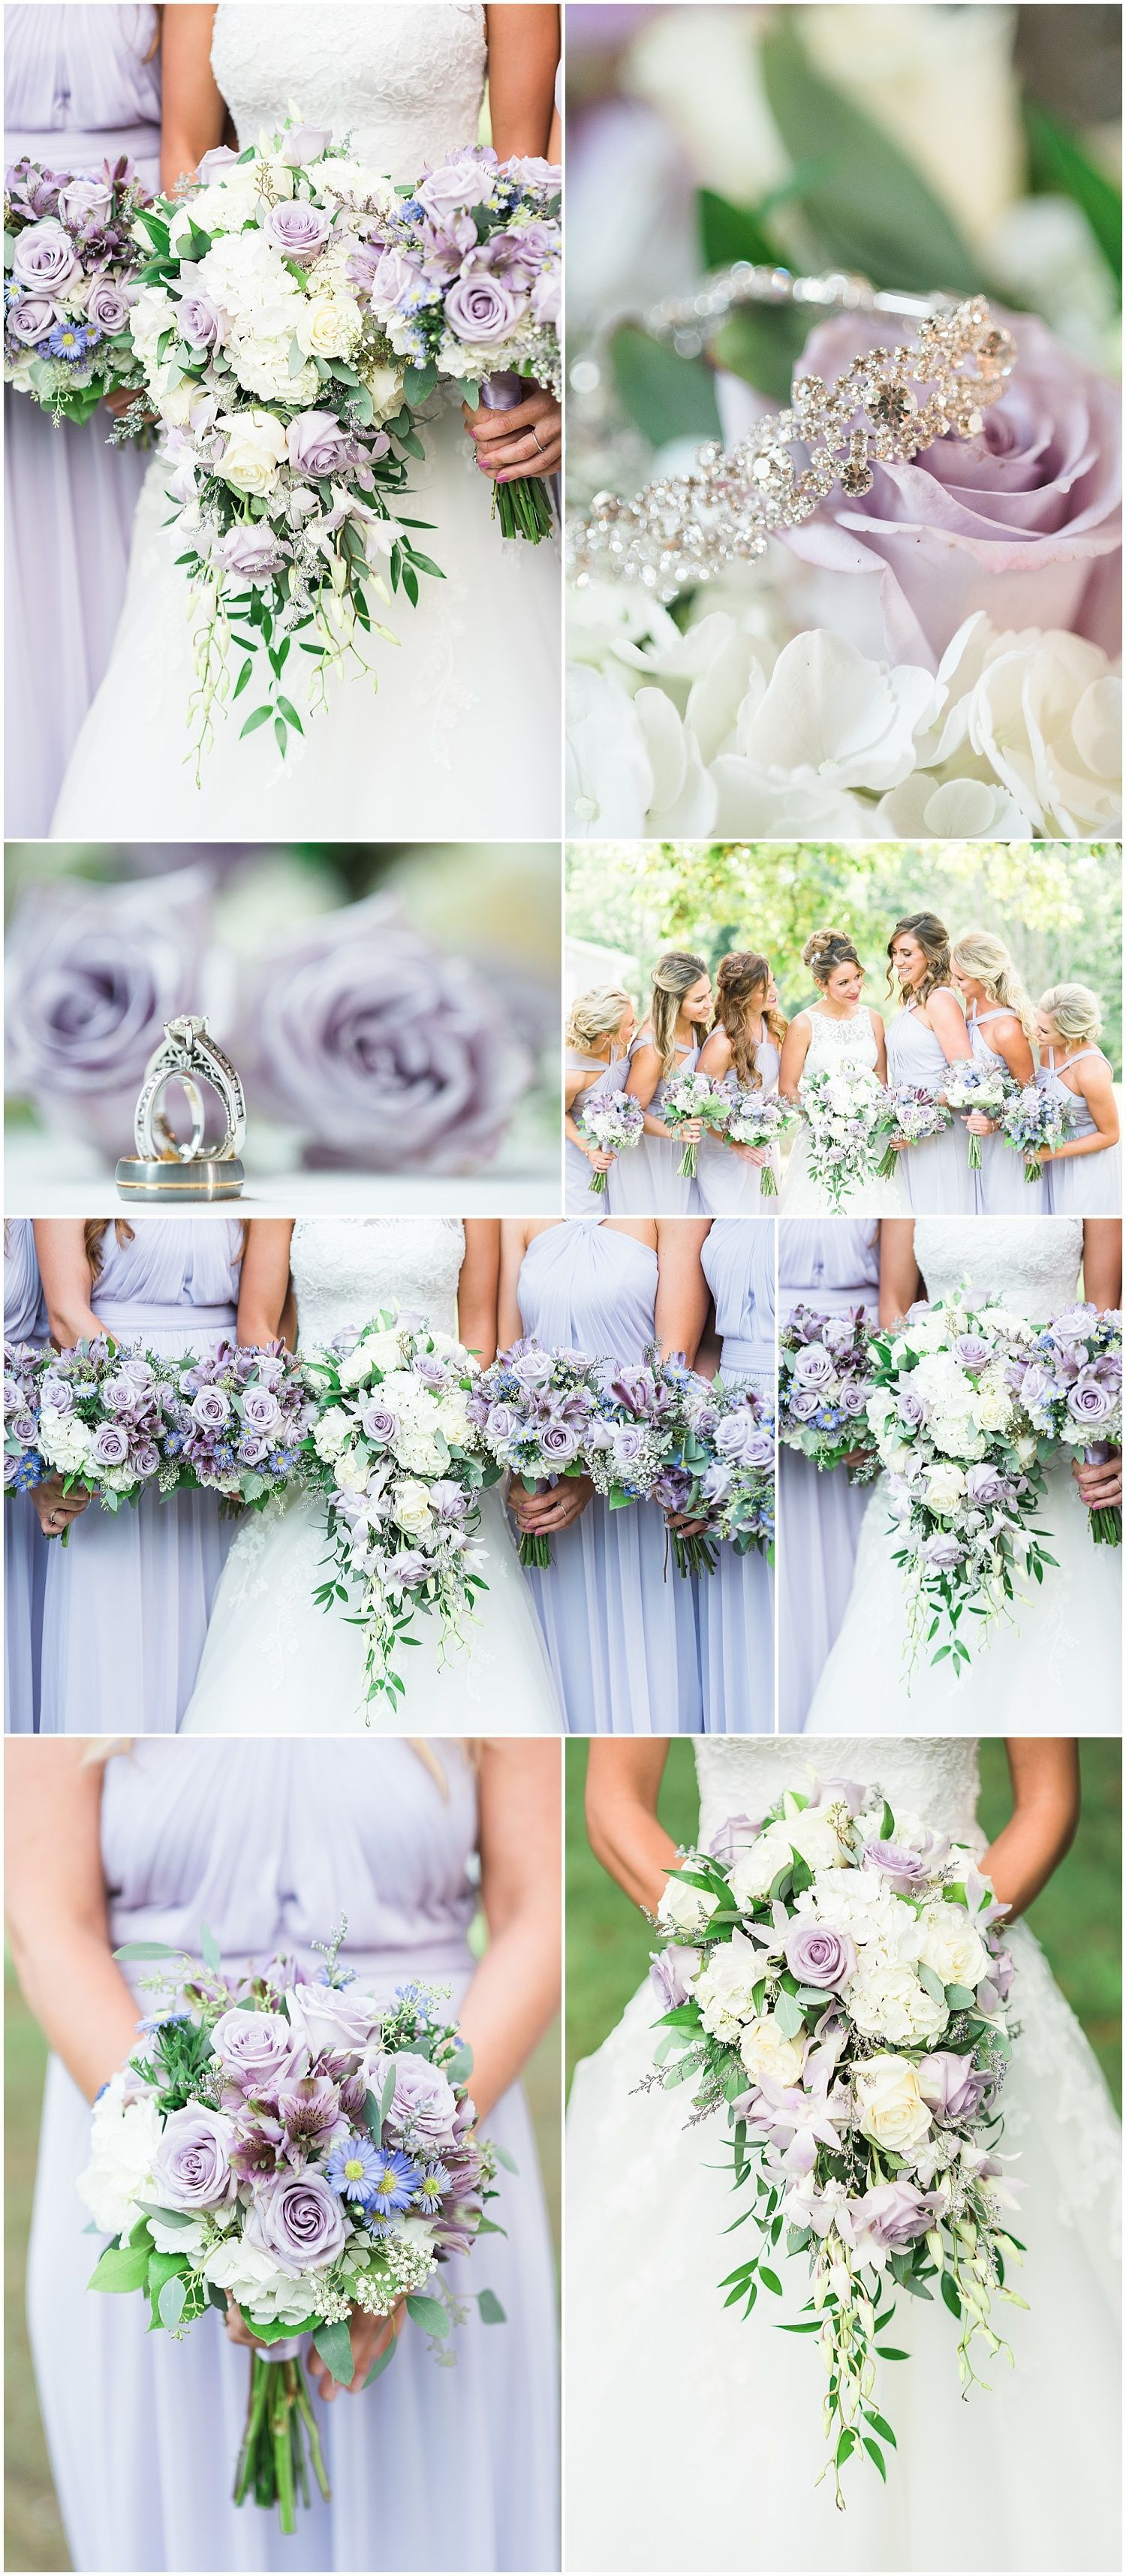 KY Wedding Photography | Keith & Melissa Photography and Video